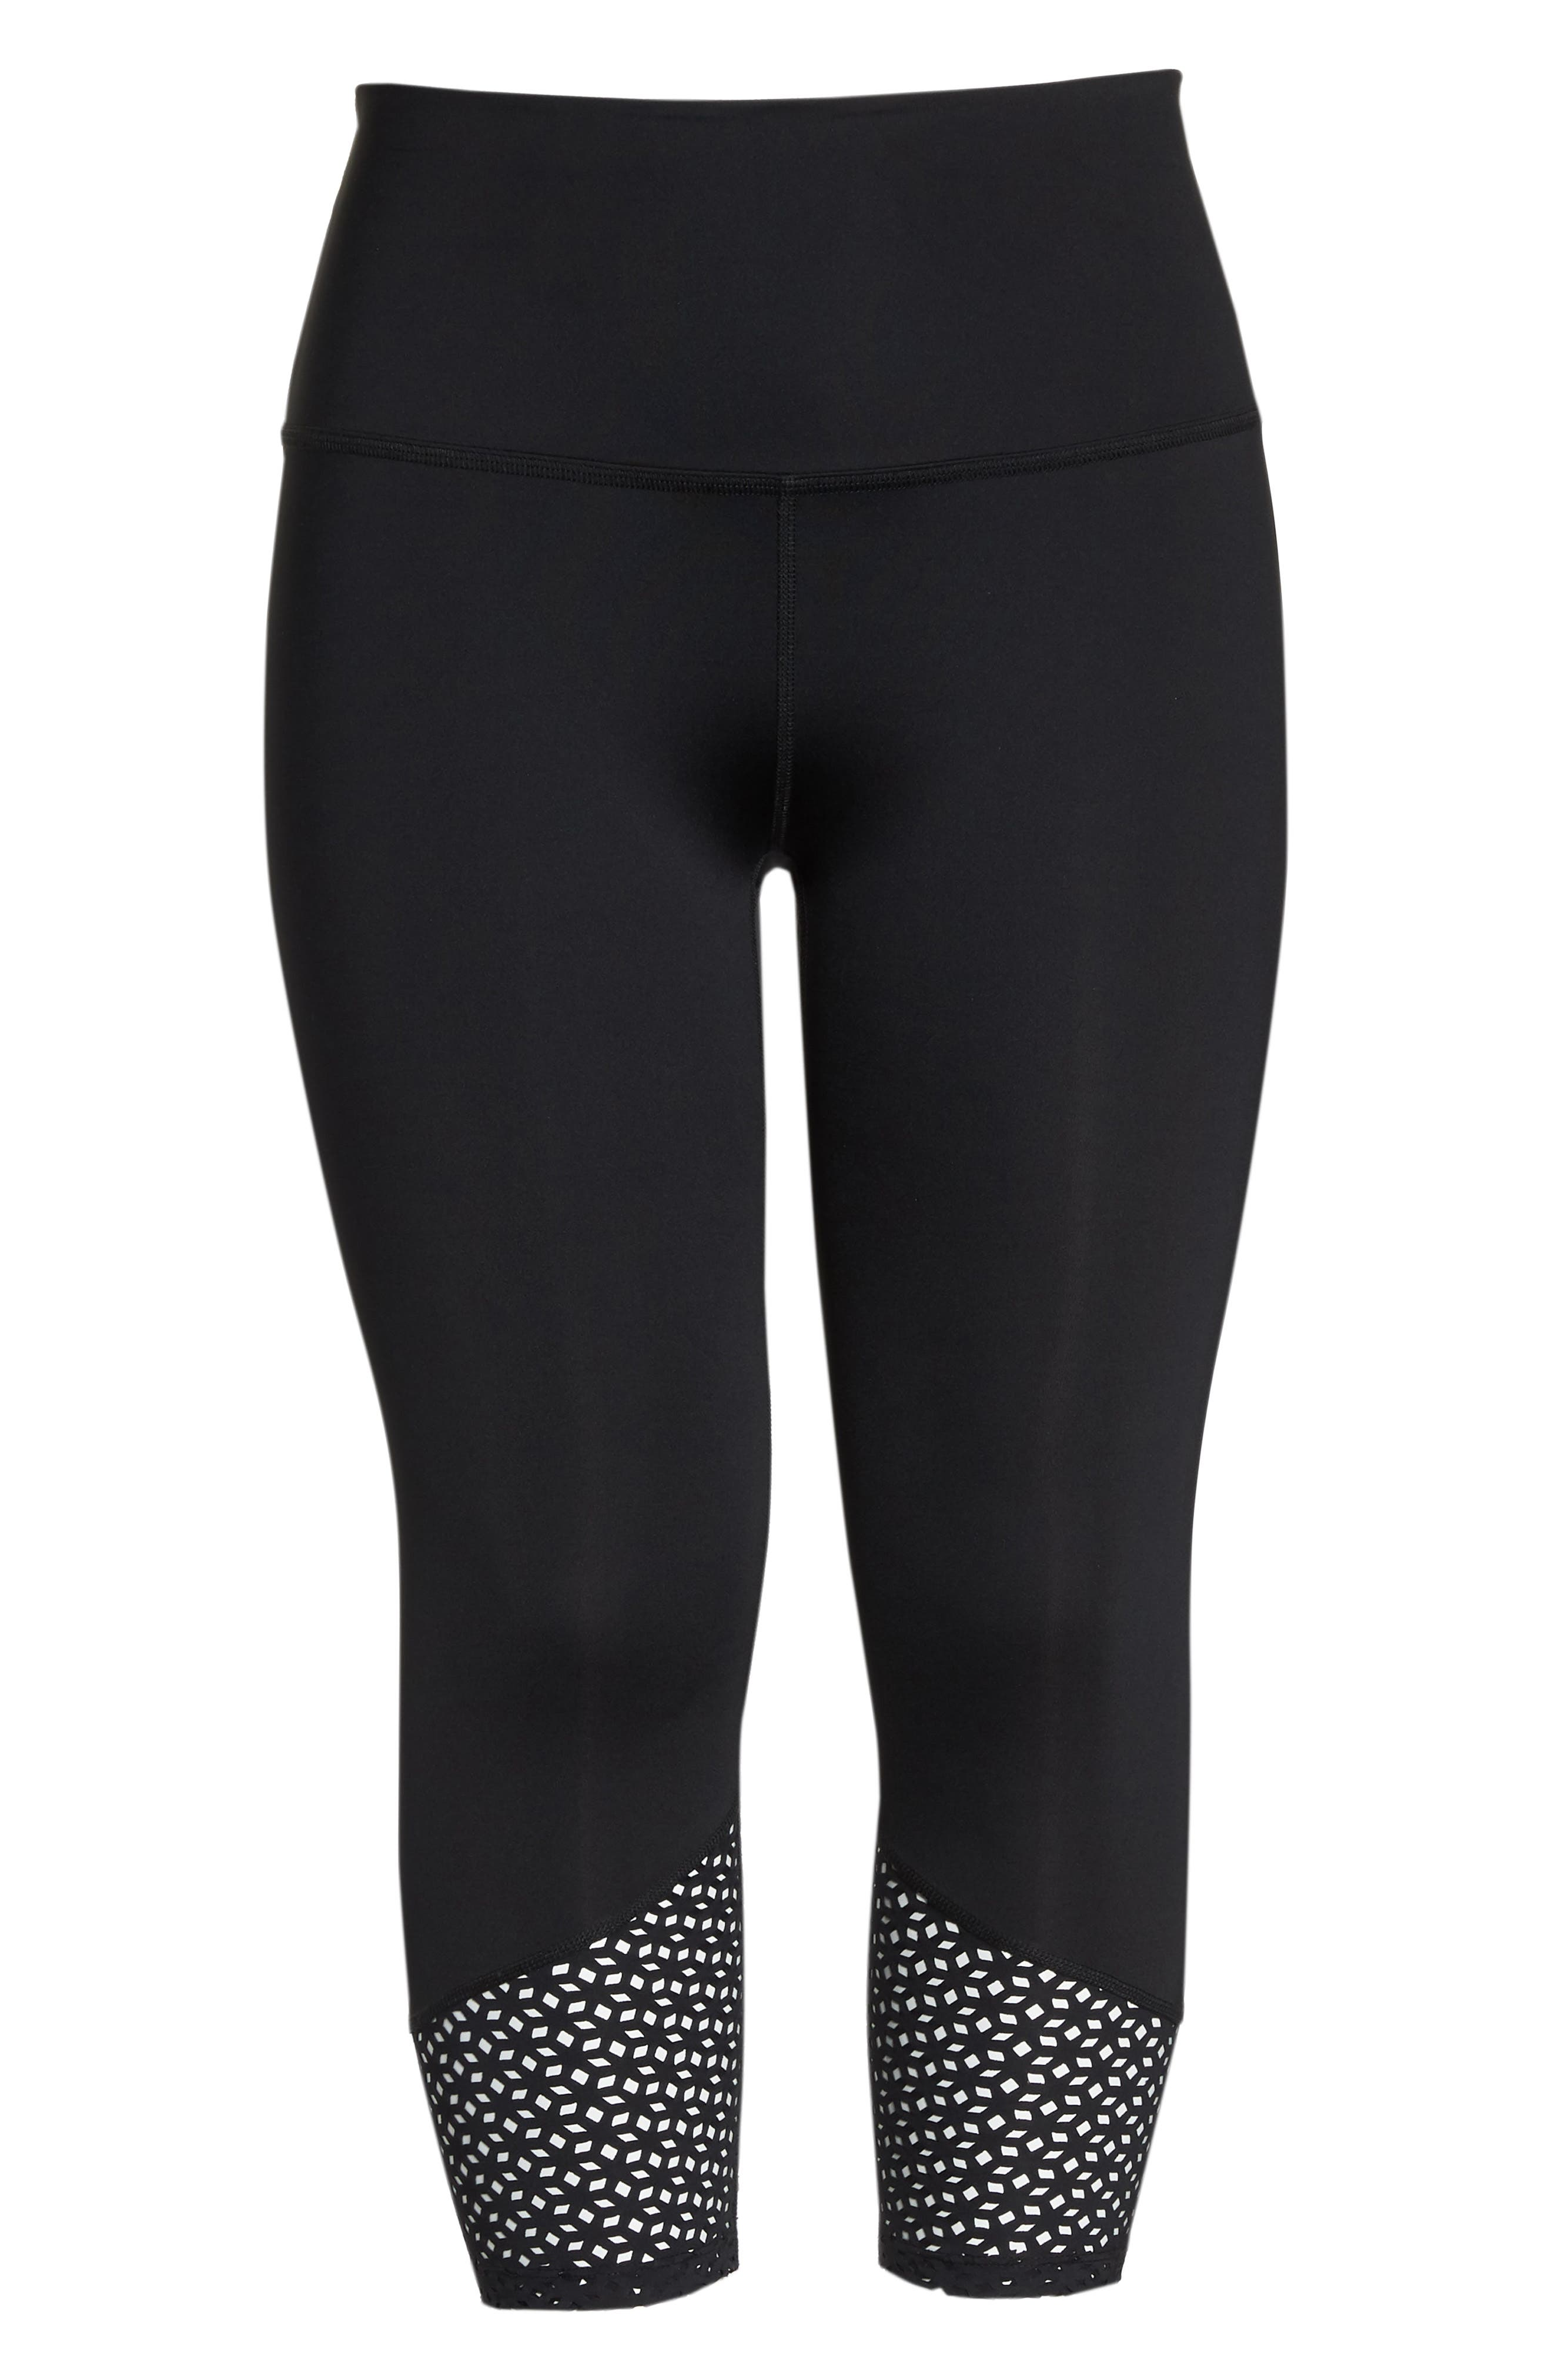 Perfect Angles High Waist Leggings,                             Alternate thumbnail 6, color,                             Black